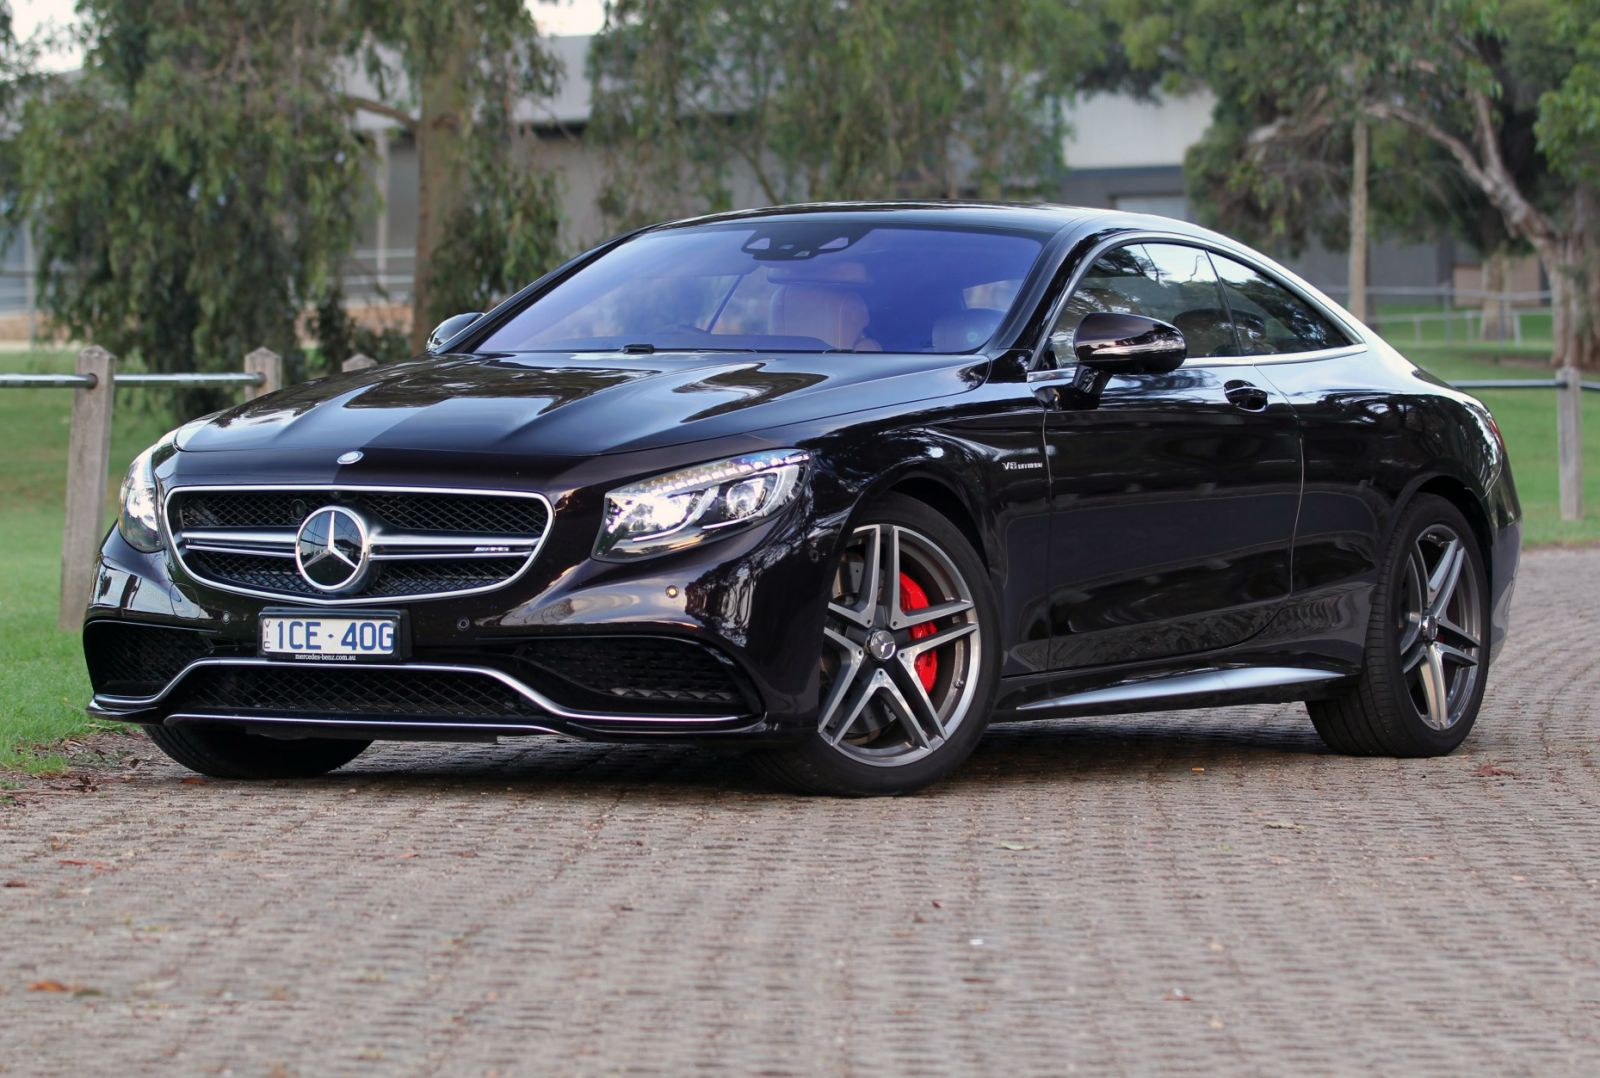 2015 Mercedes-AMG S 63 Coupe Review: Monstrous Power, Monstrous Performance... Monstrous Price